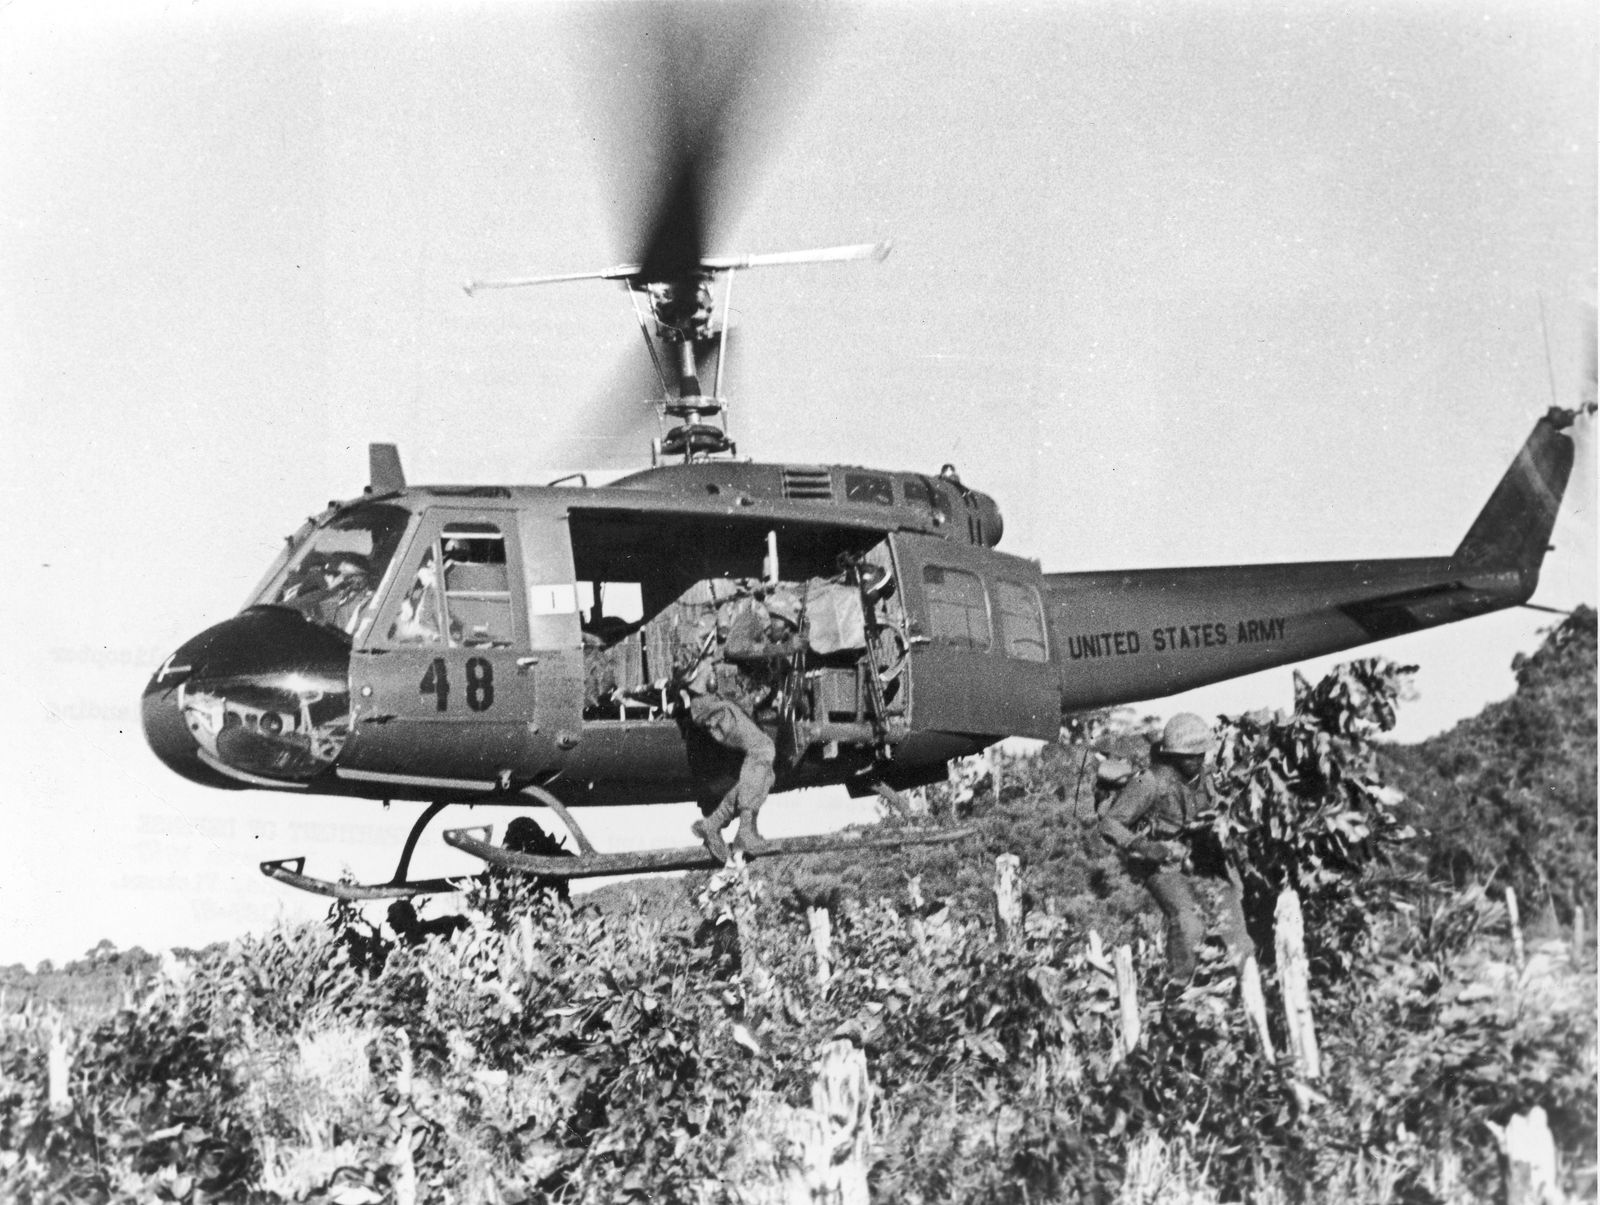 Michael Verhoeven - Soldiers Jumping From Helicopter in Air Strike, Vietnam, 1967.